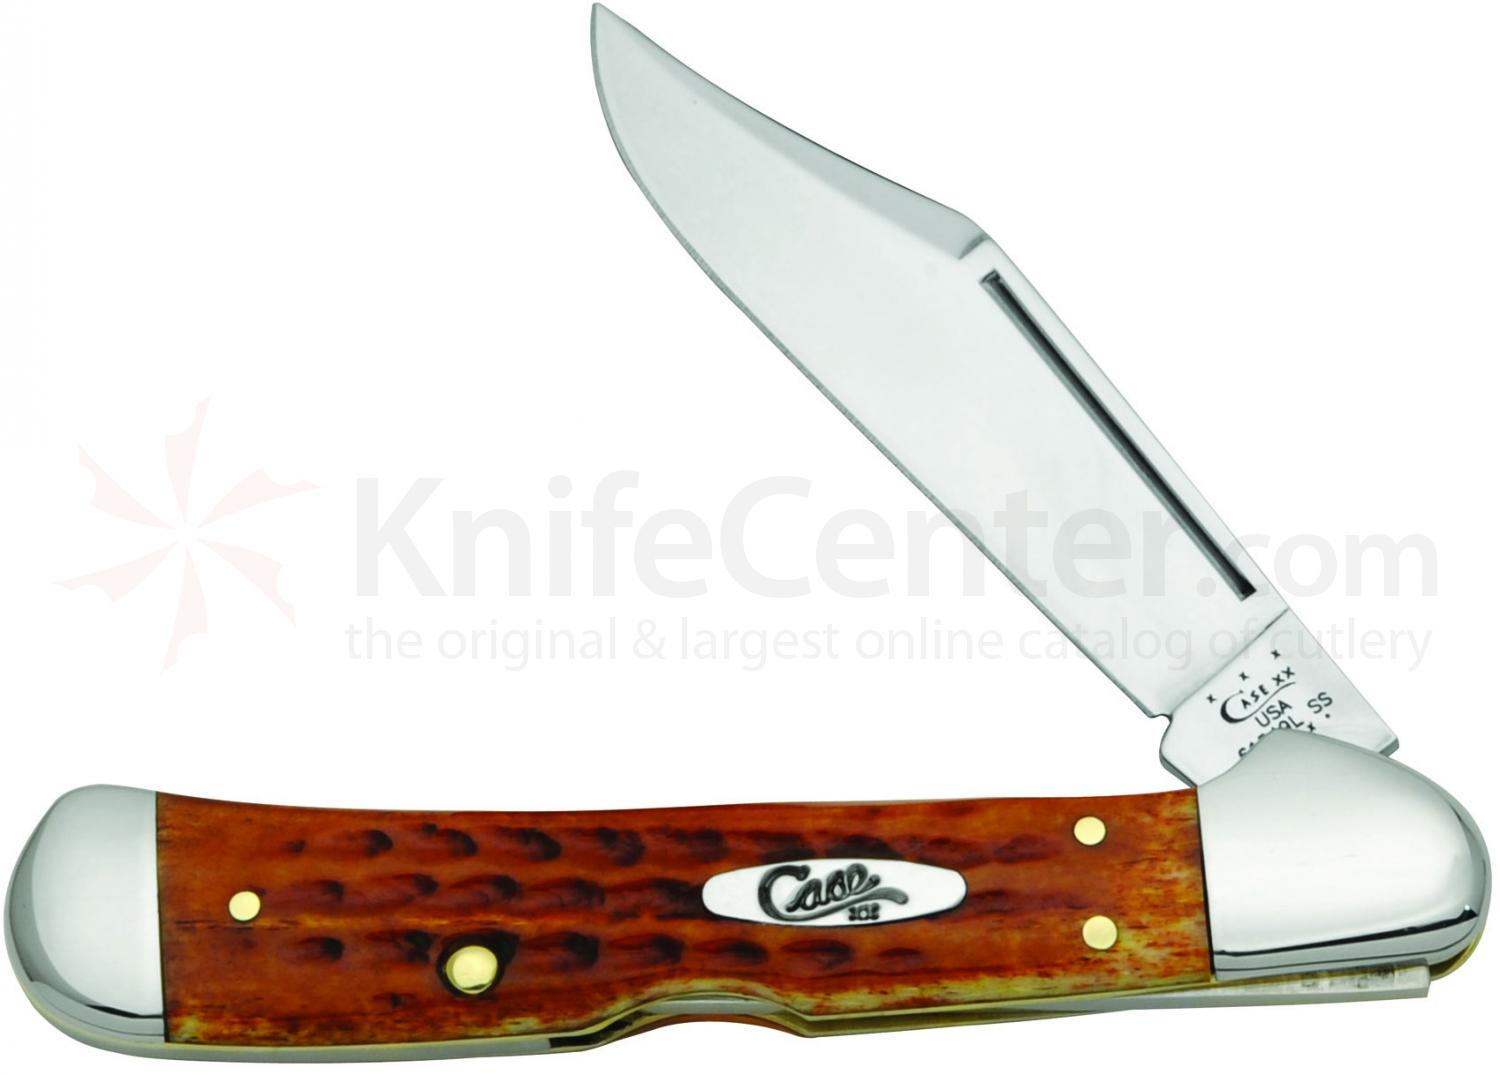 Case Pocket Worn Harvest Orange Bone CopperLock 4-1/4 inch Closed (61549L SS)